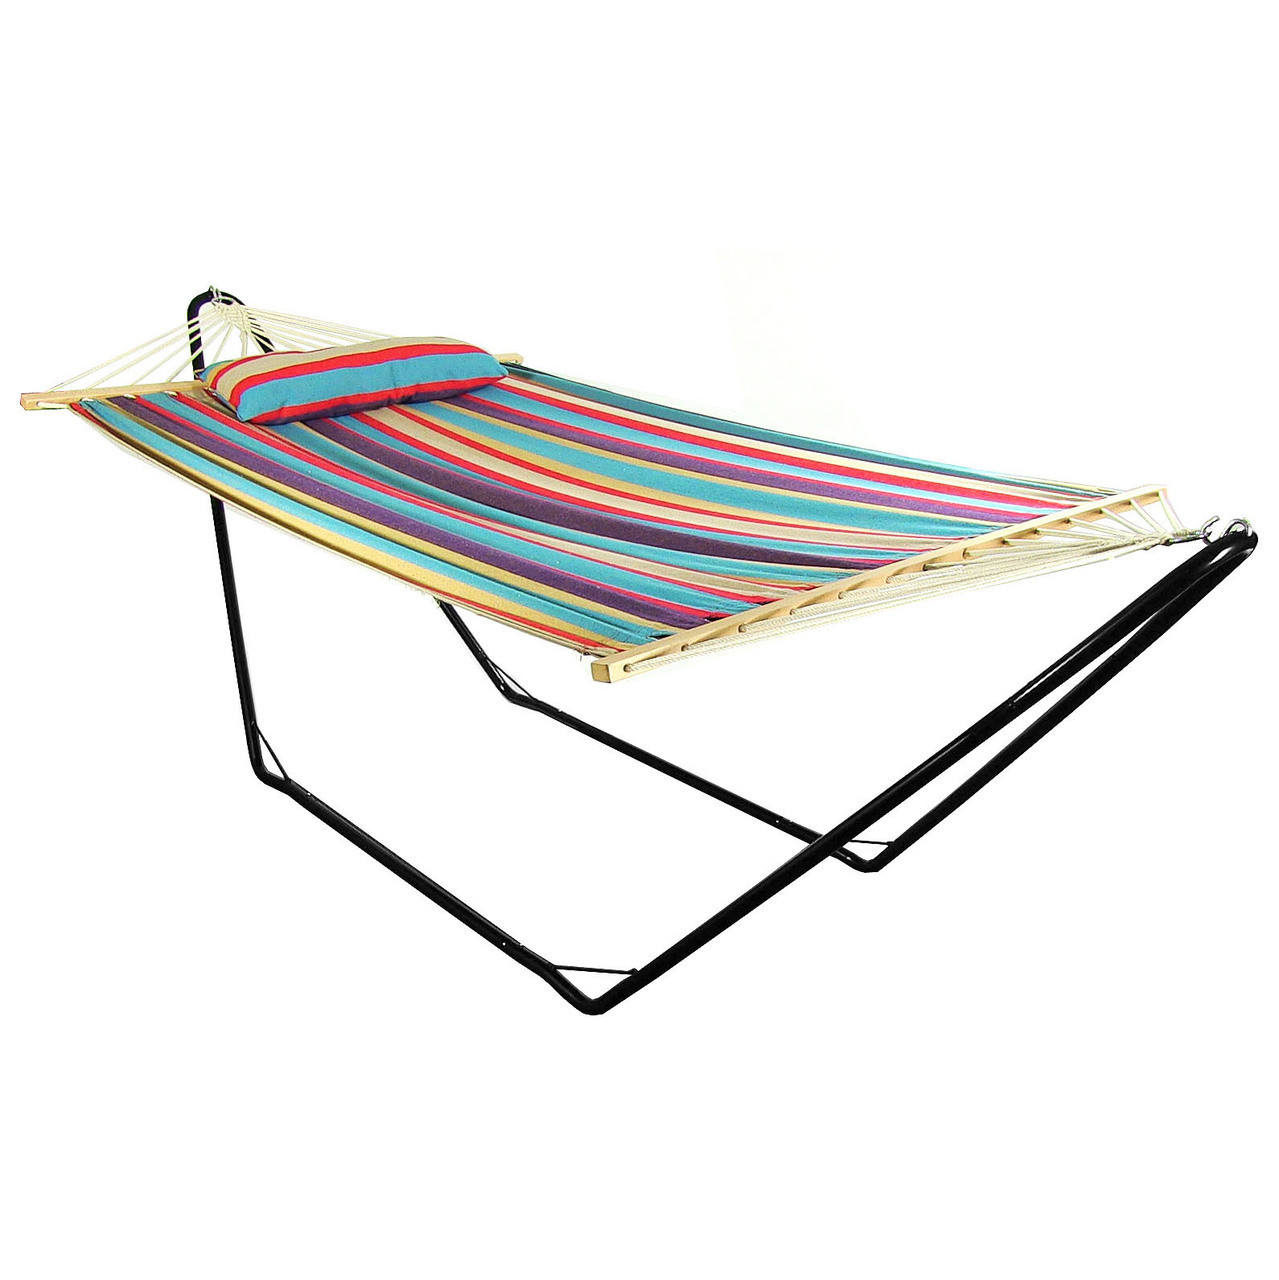 Sunnydaze Wildberry Cotton Fabric Hammock Spreader Bars Pillow Stand Com Picture 537